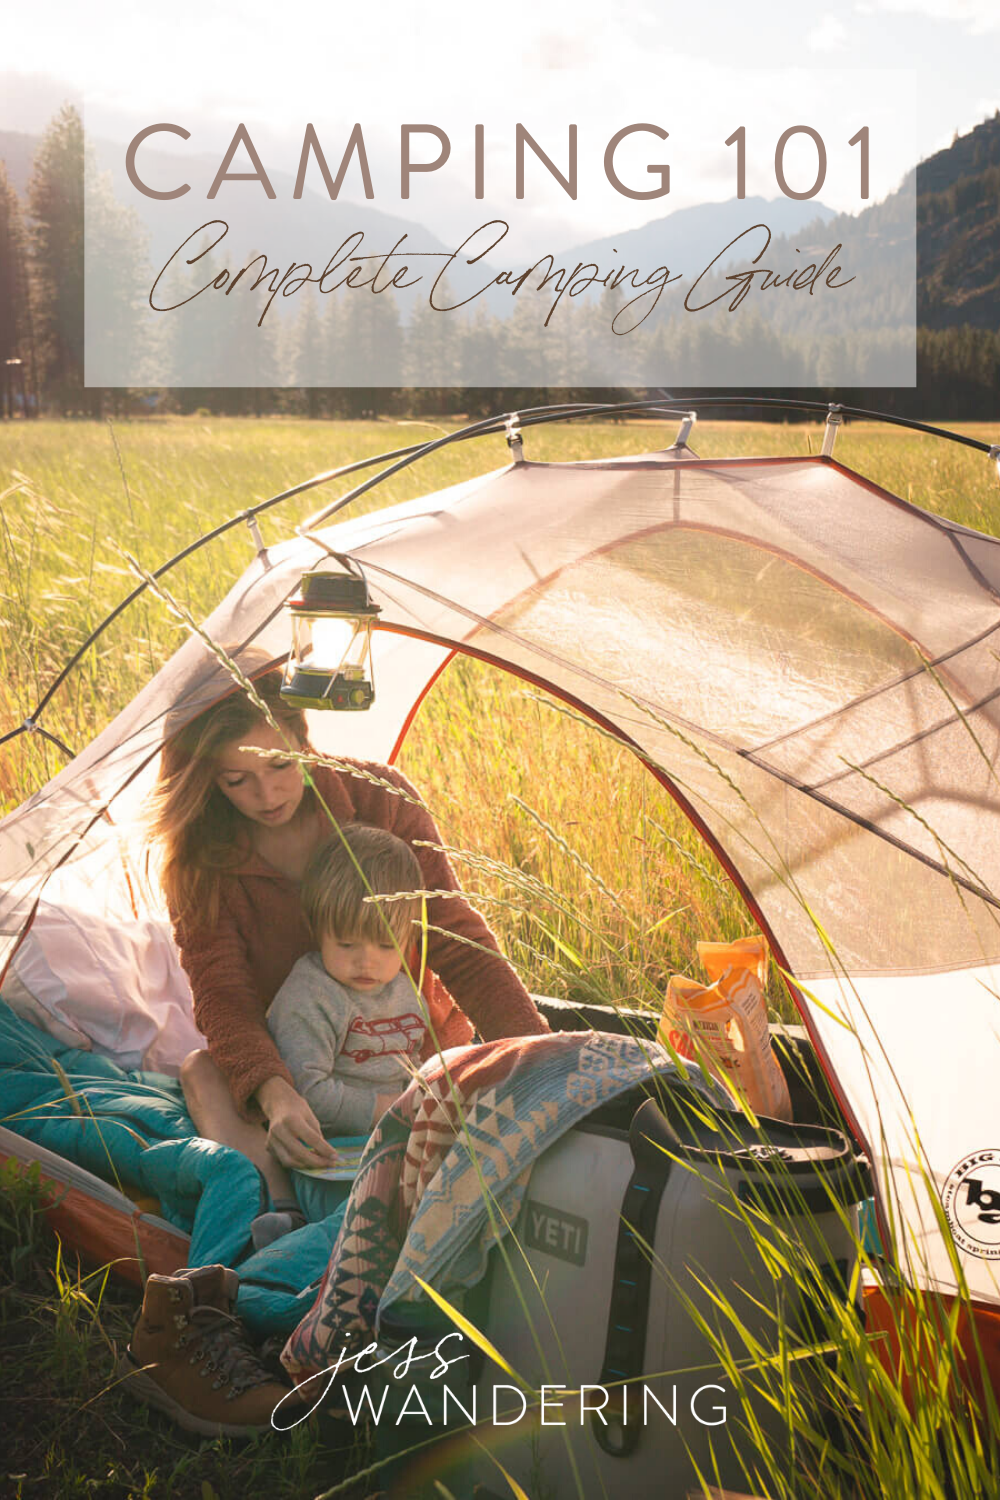 Complete camping guide for beginners.